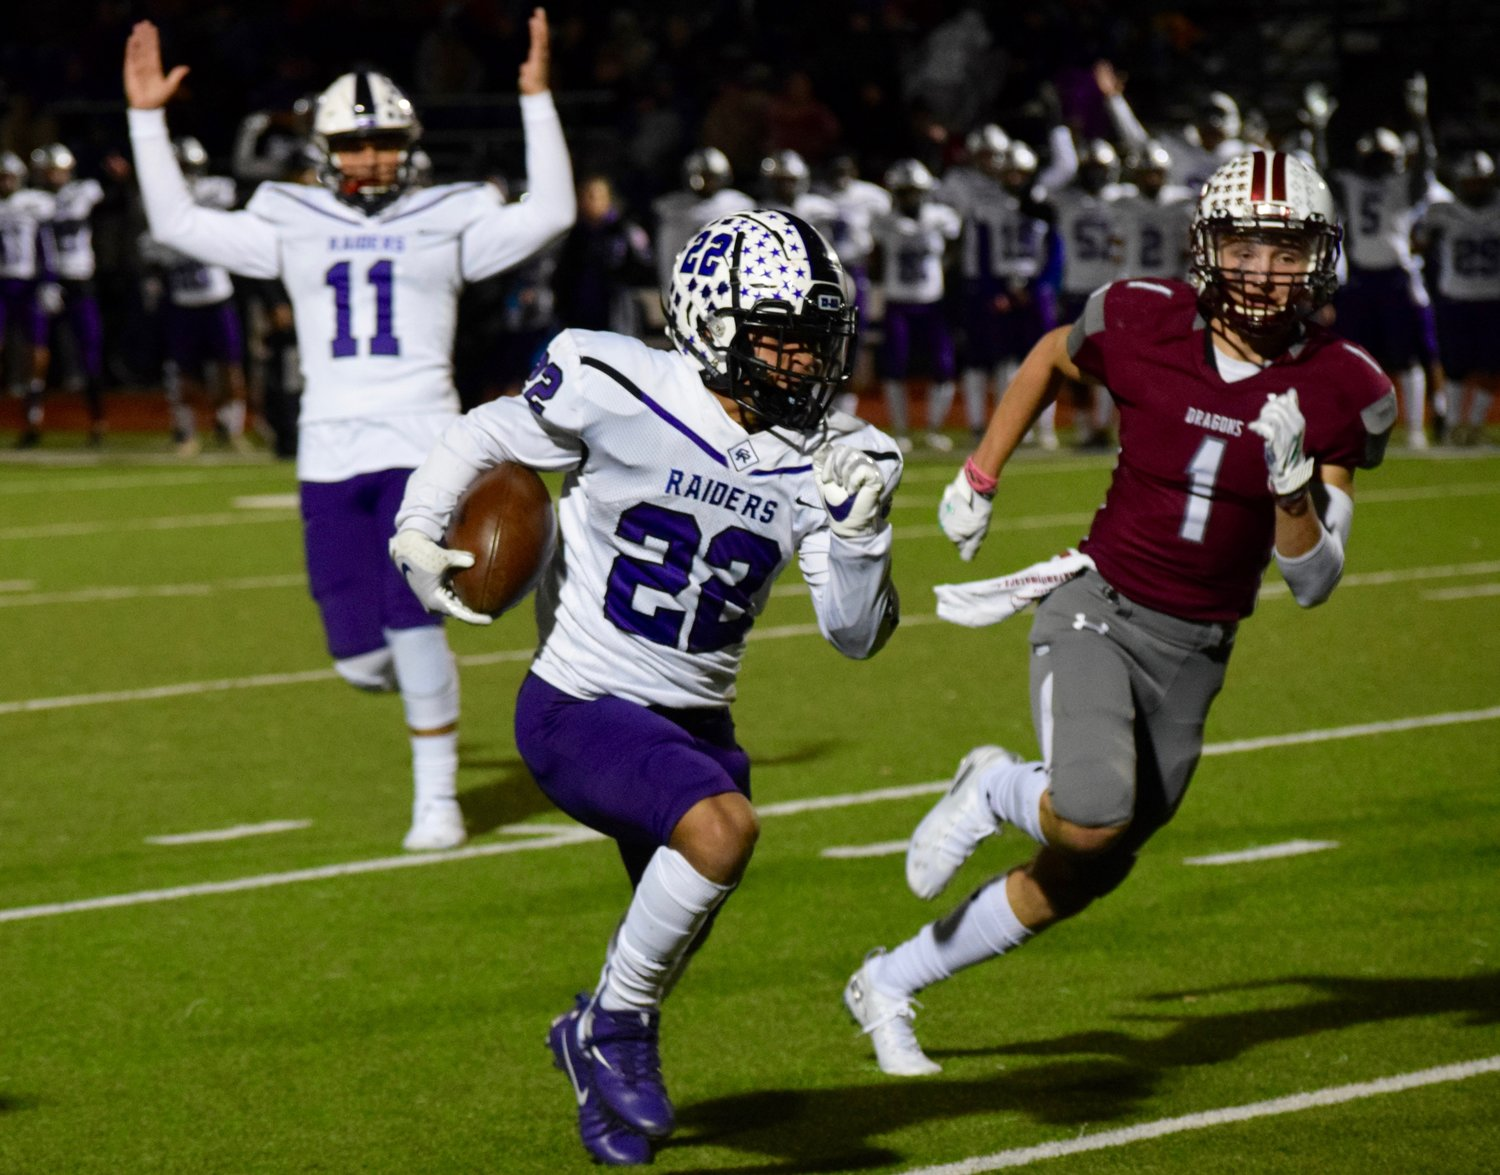 Cedar Ridge running back Deuce Vaughn carried the ball 38 times for 375 yards and four touchdowns in the Raiders' win over Round Rock on Friday night.